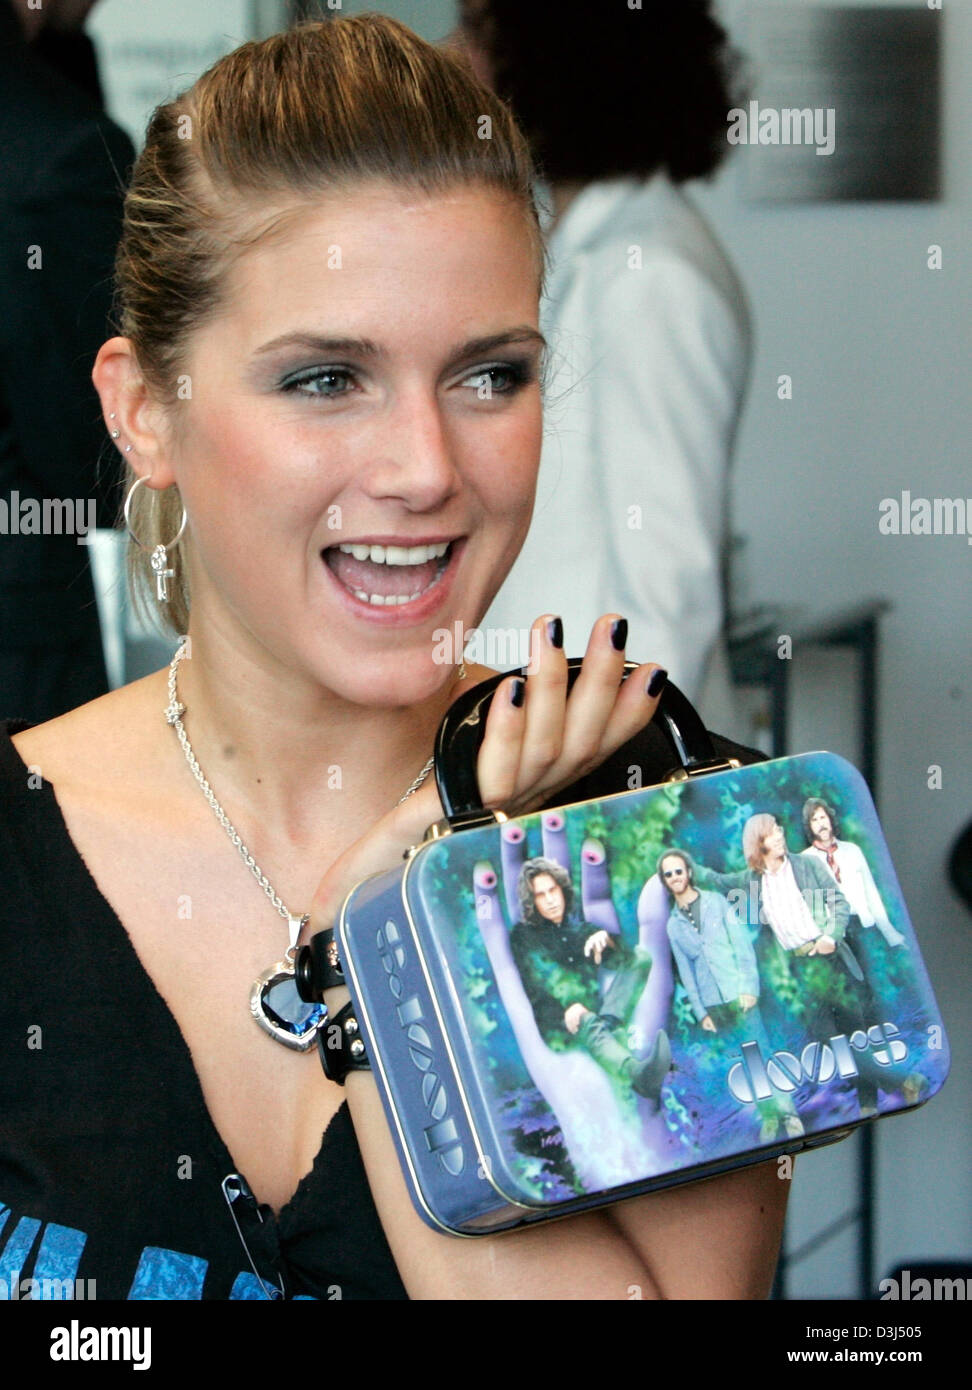 dpa german pop singer jeanette biedermann poses with a tiny suitcase prior to a press conference in berlin 03 june 2005 after her eye laser surgery in